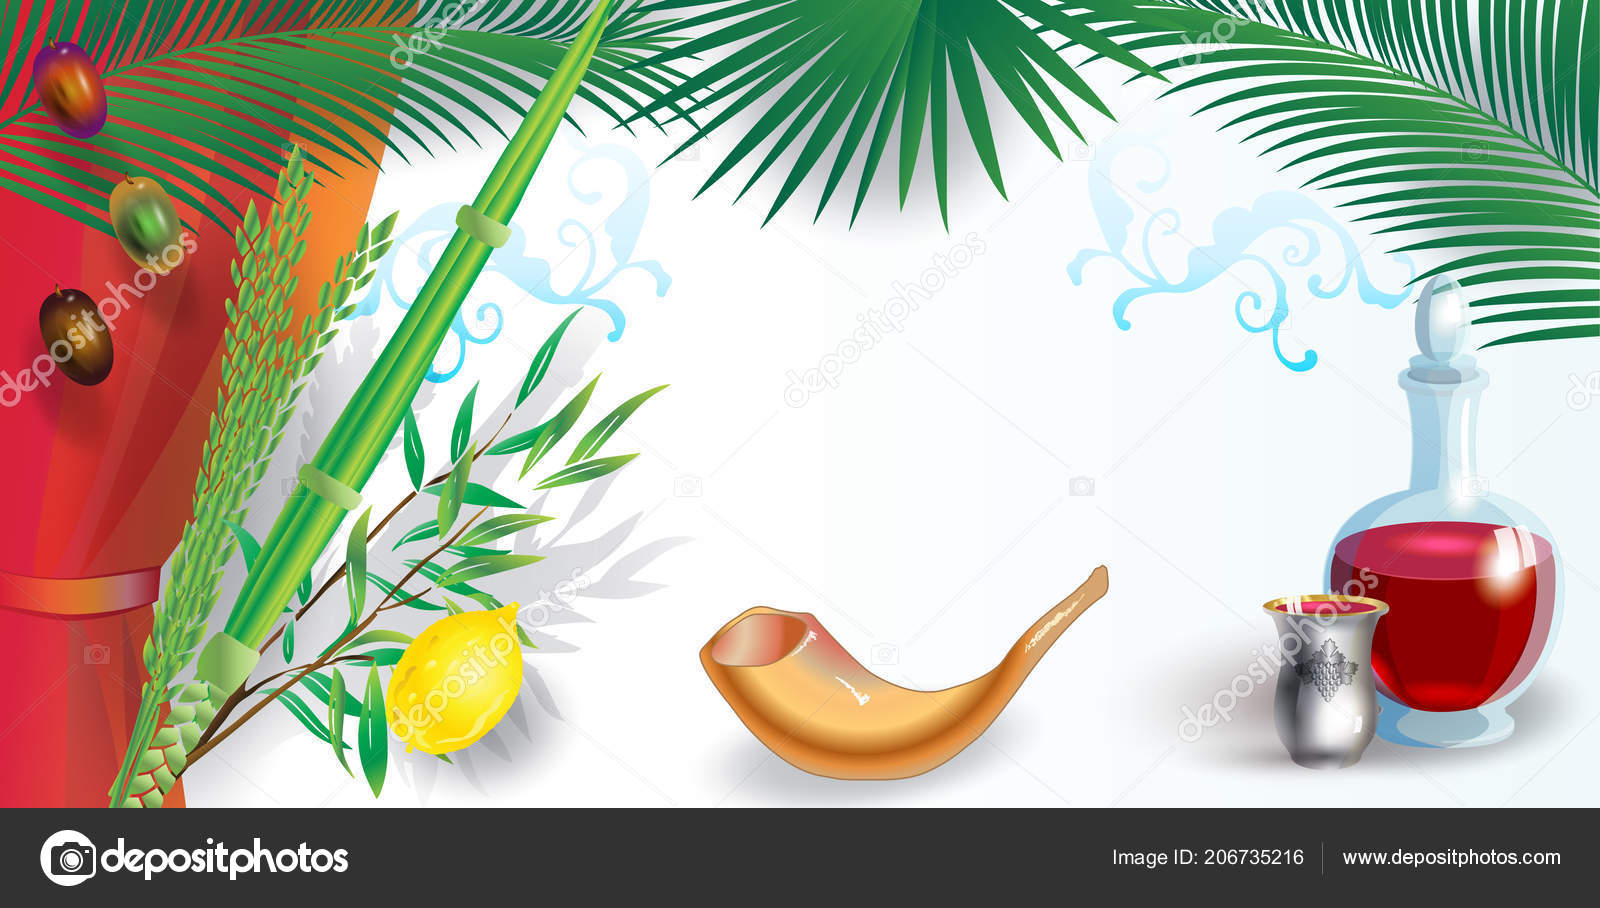 Happy Sukkot Festival Greeting Card Frame Lulav Etrog Shofar Palm